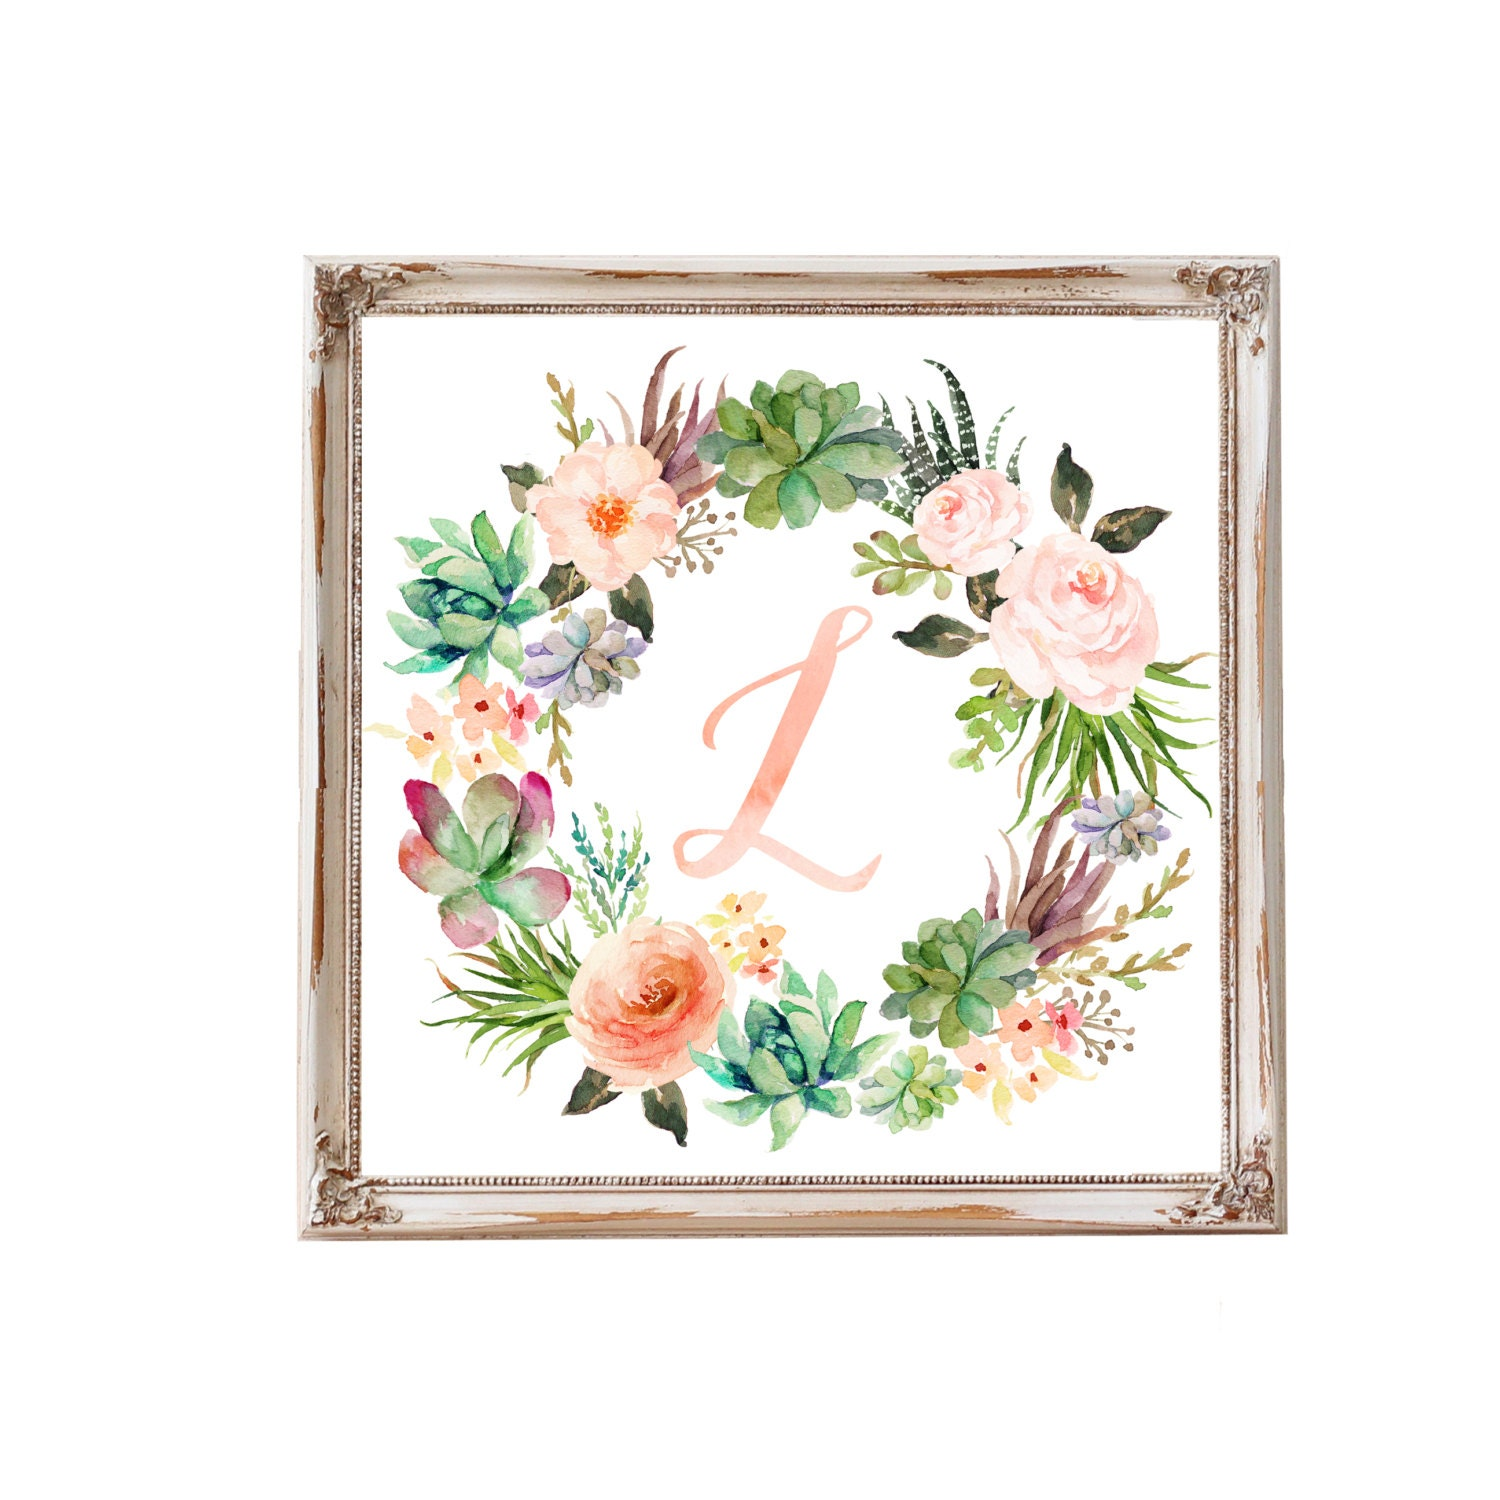 Monogram nursery art nursery wall art baby gift girl floral for Nursery wall art